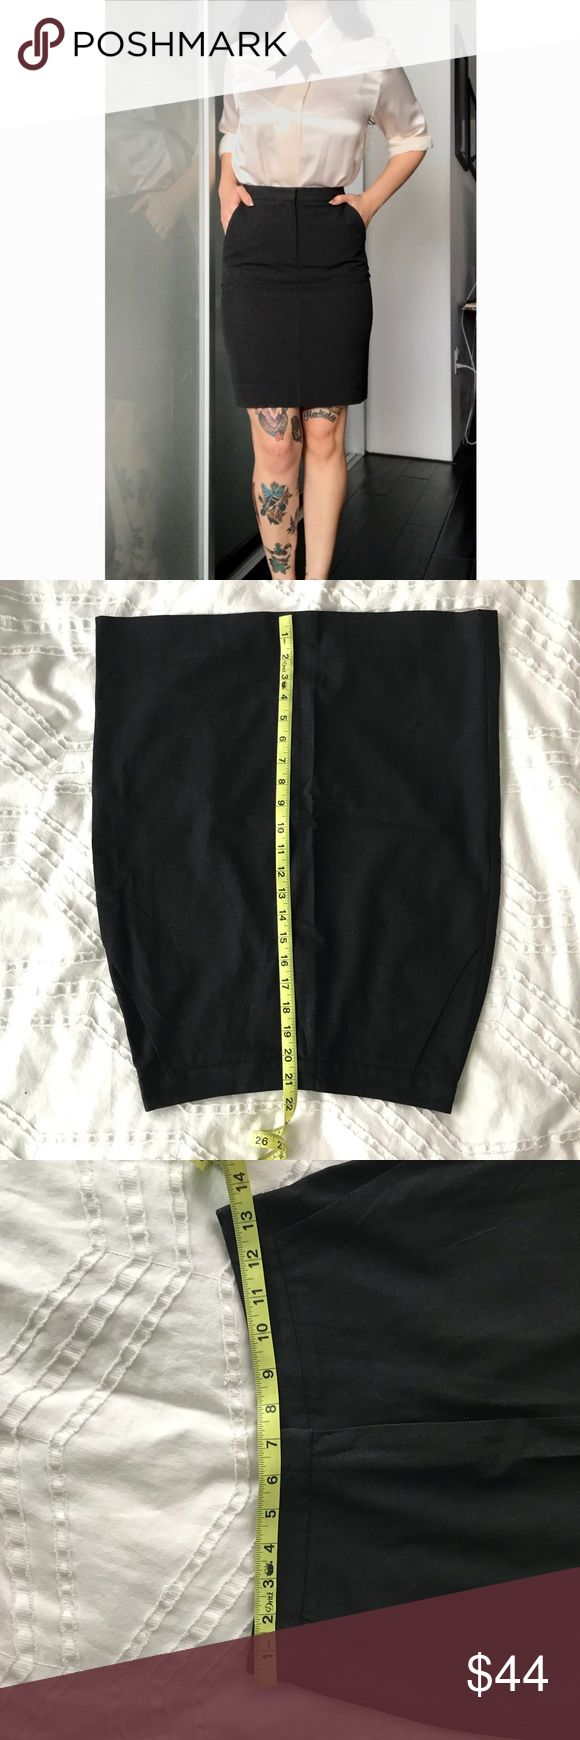 Vtg Trina Turk pencil secretary work skirt Super cute classic skirt that needs to be a staple in every wardrobe.  Dark charcoal color pencil skirt. Tagged at size 2 but please note measurements in pictures. In great condition.  Blouse for sale in separate listing🖤 Let me know if you have any questions! Trina Turk Skirts Pencil